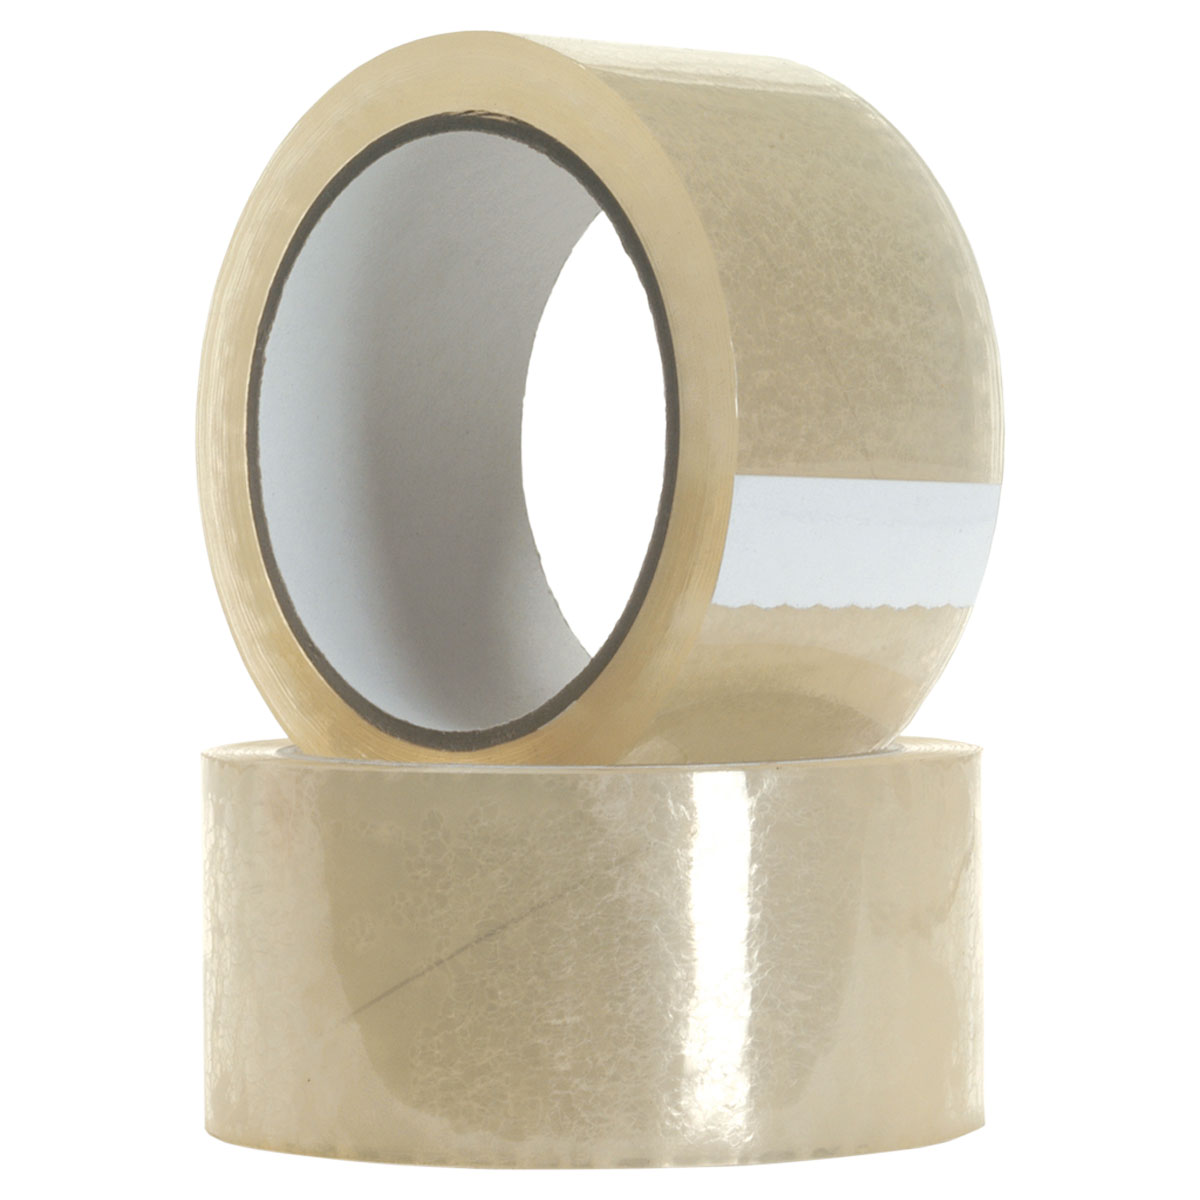 TAPE PACKAGING CLEAR